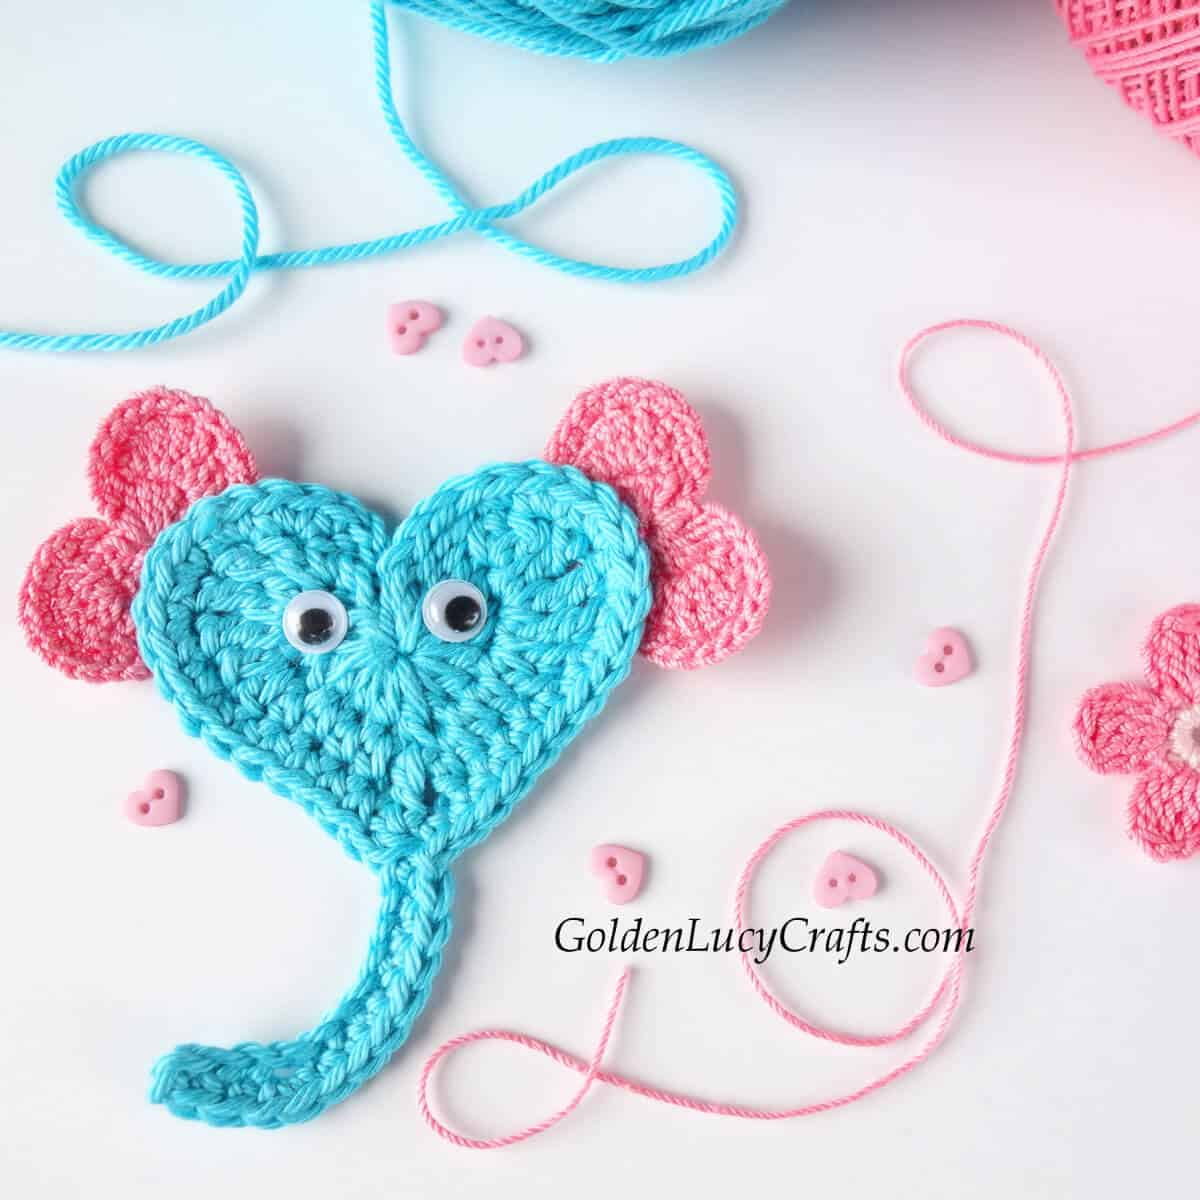 Crochet heart elephant applique in aqua with pink ears, close up picture.